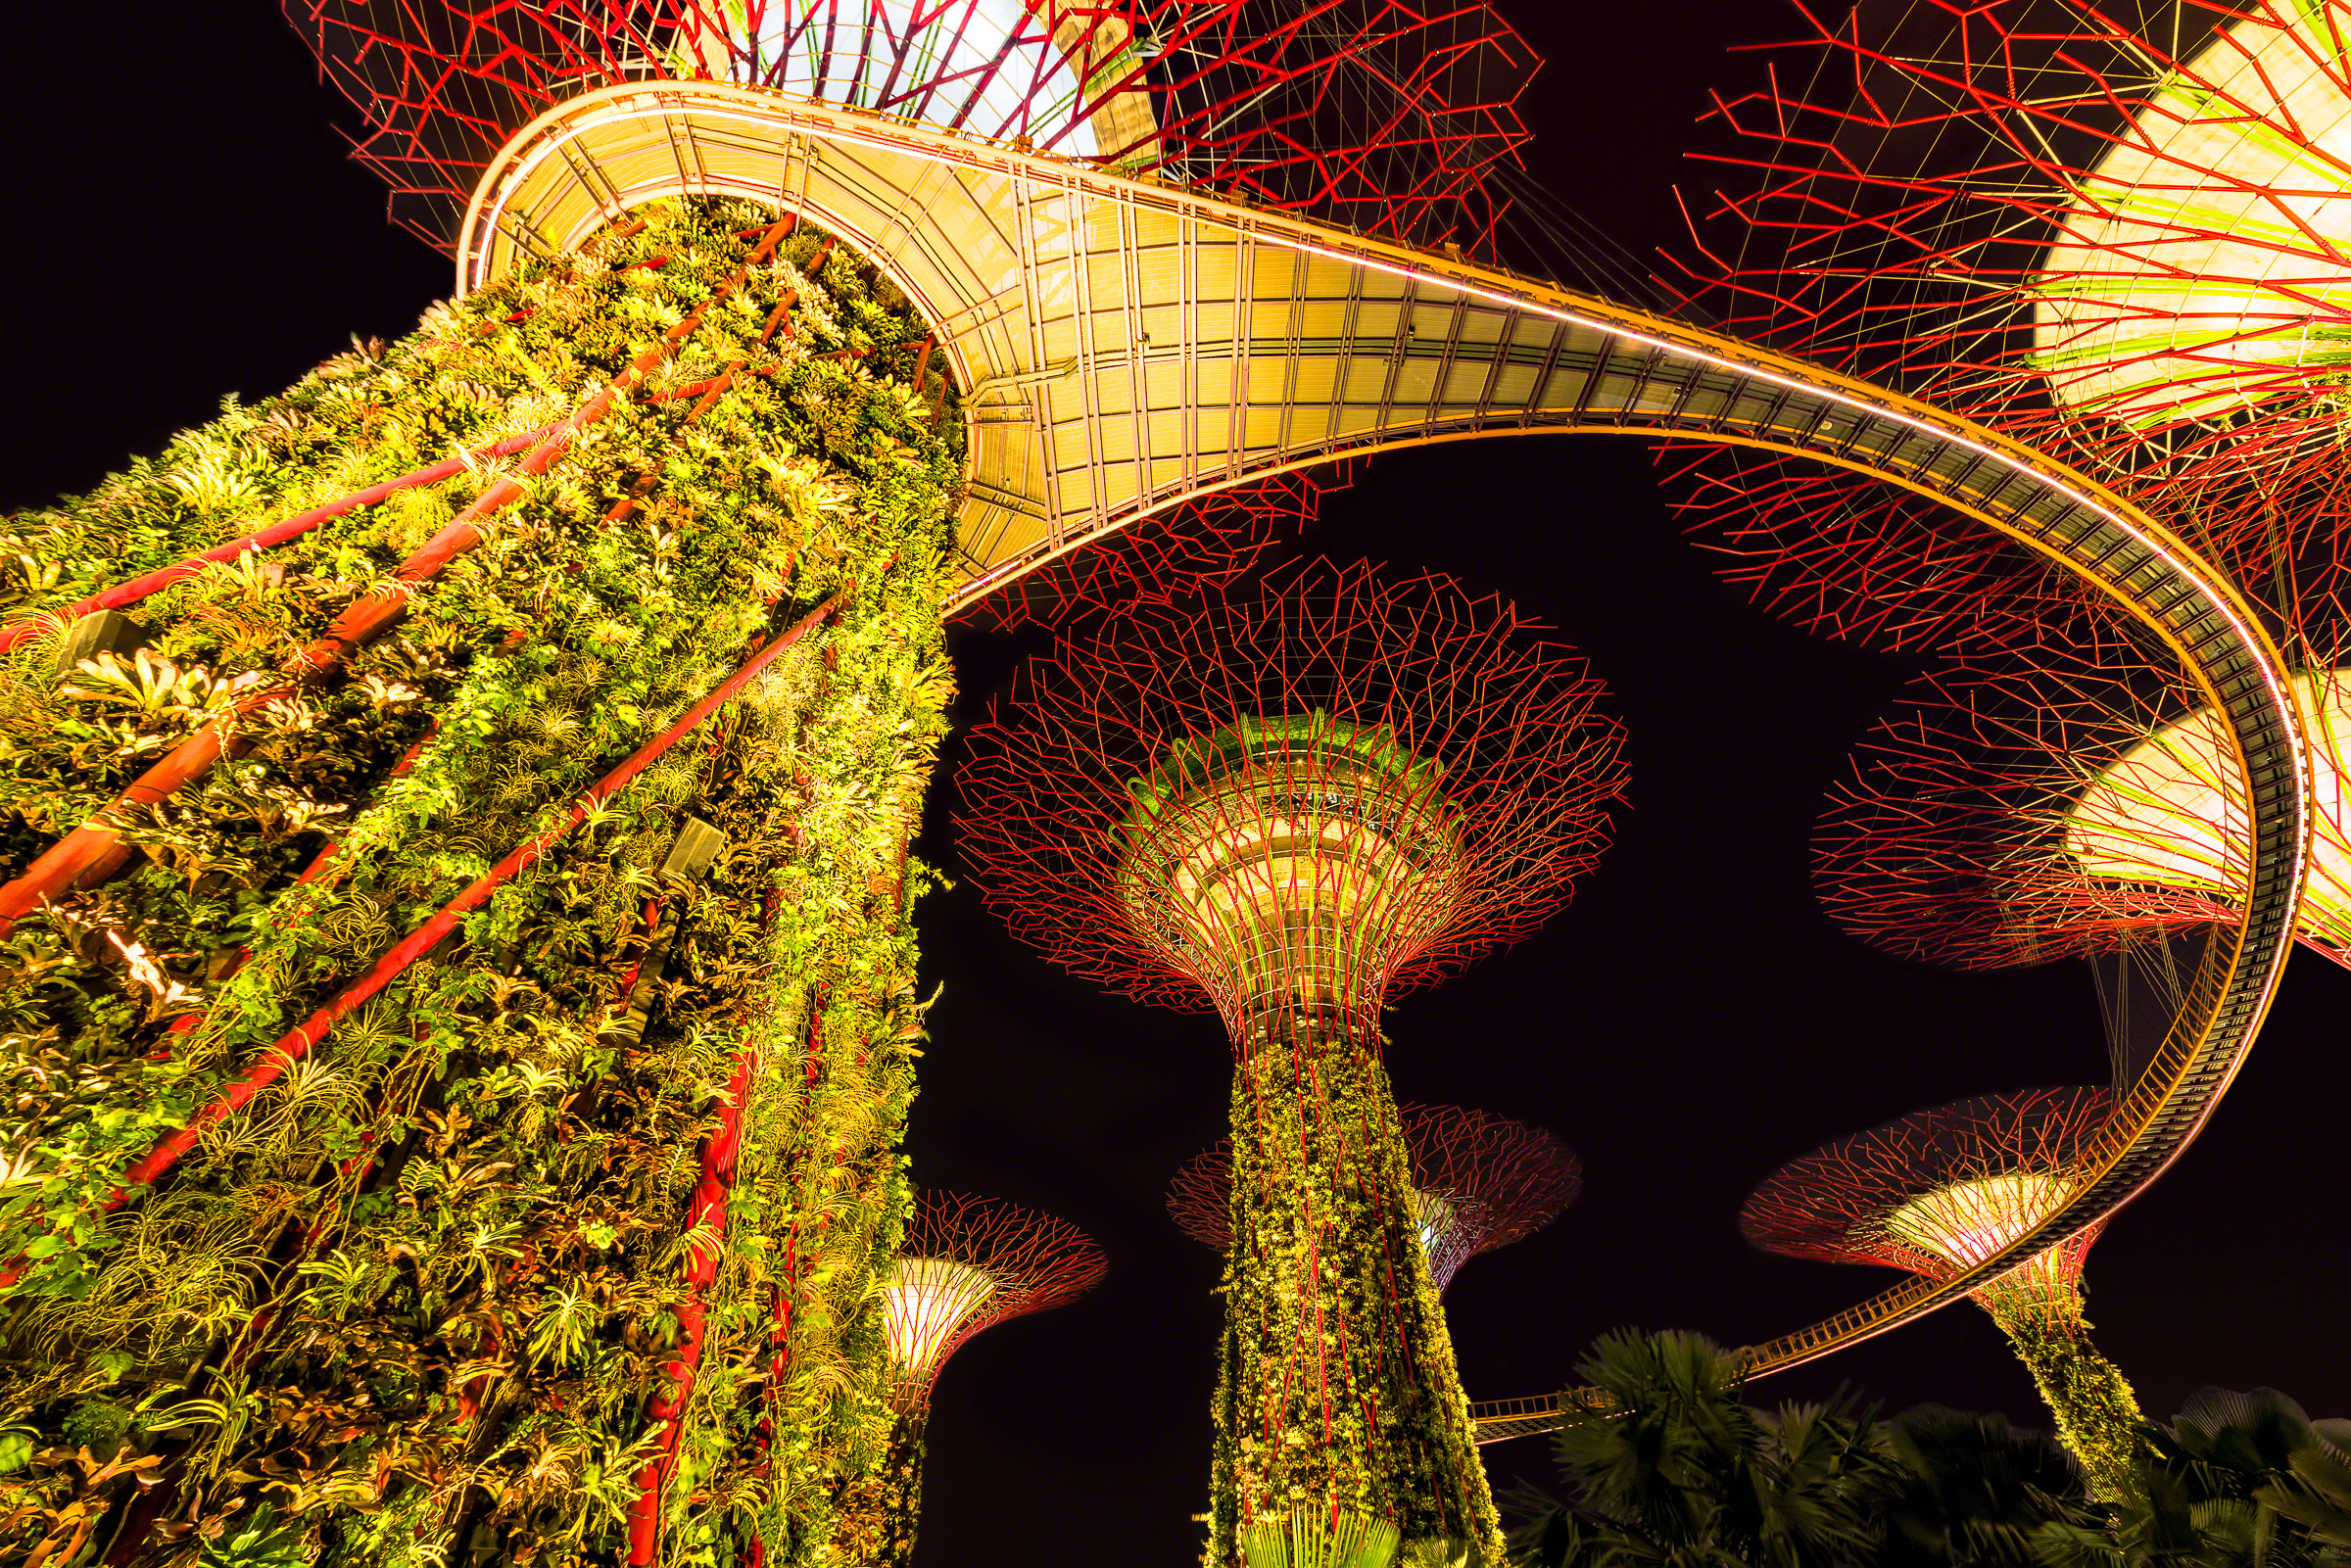 The Supertrees